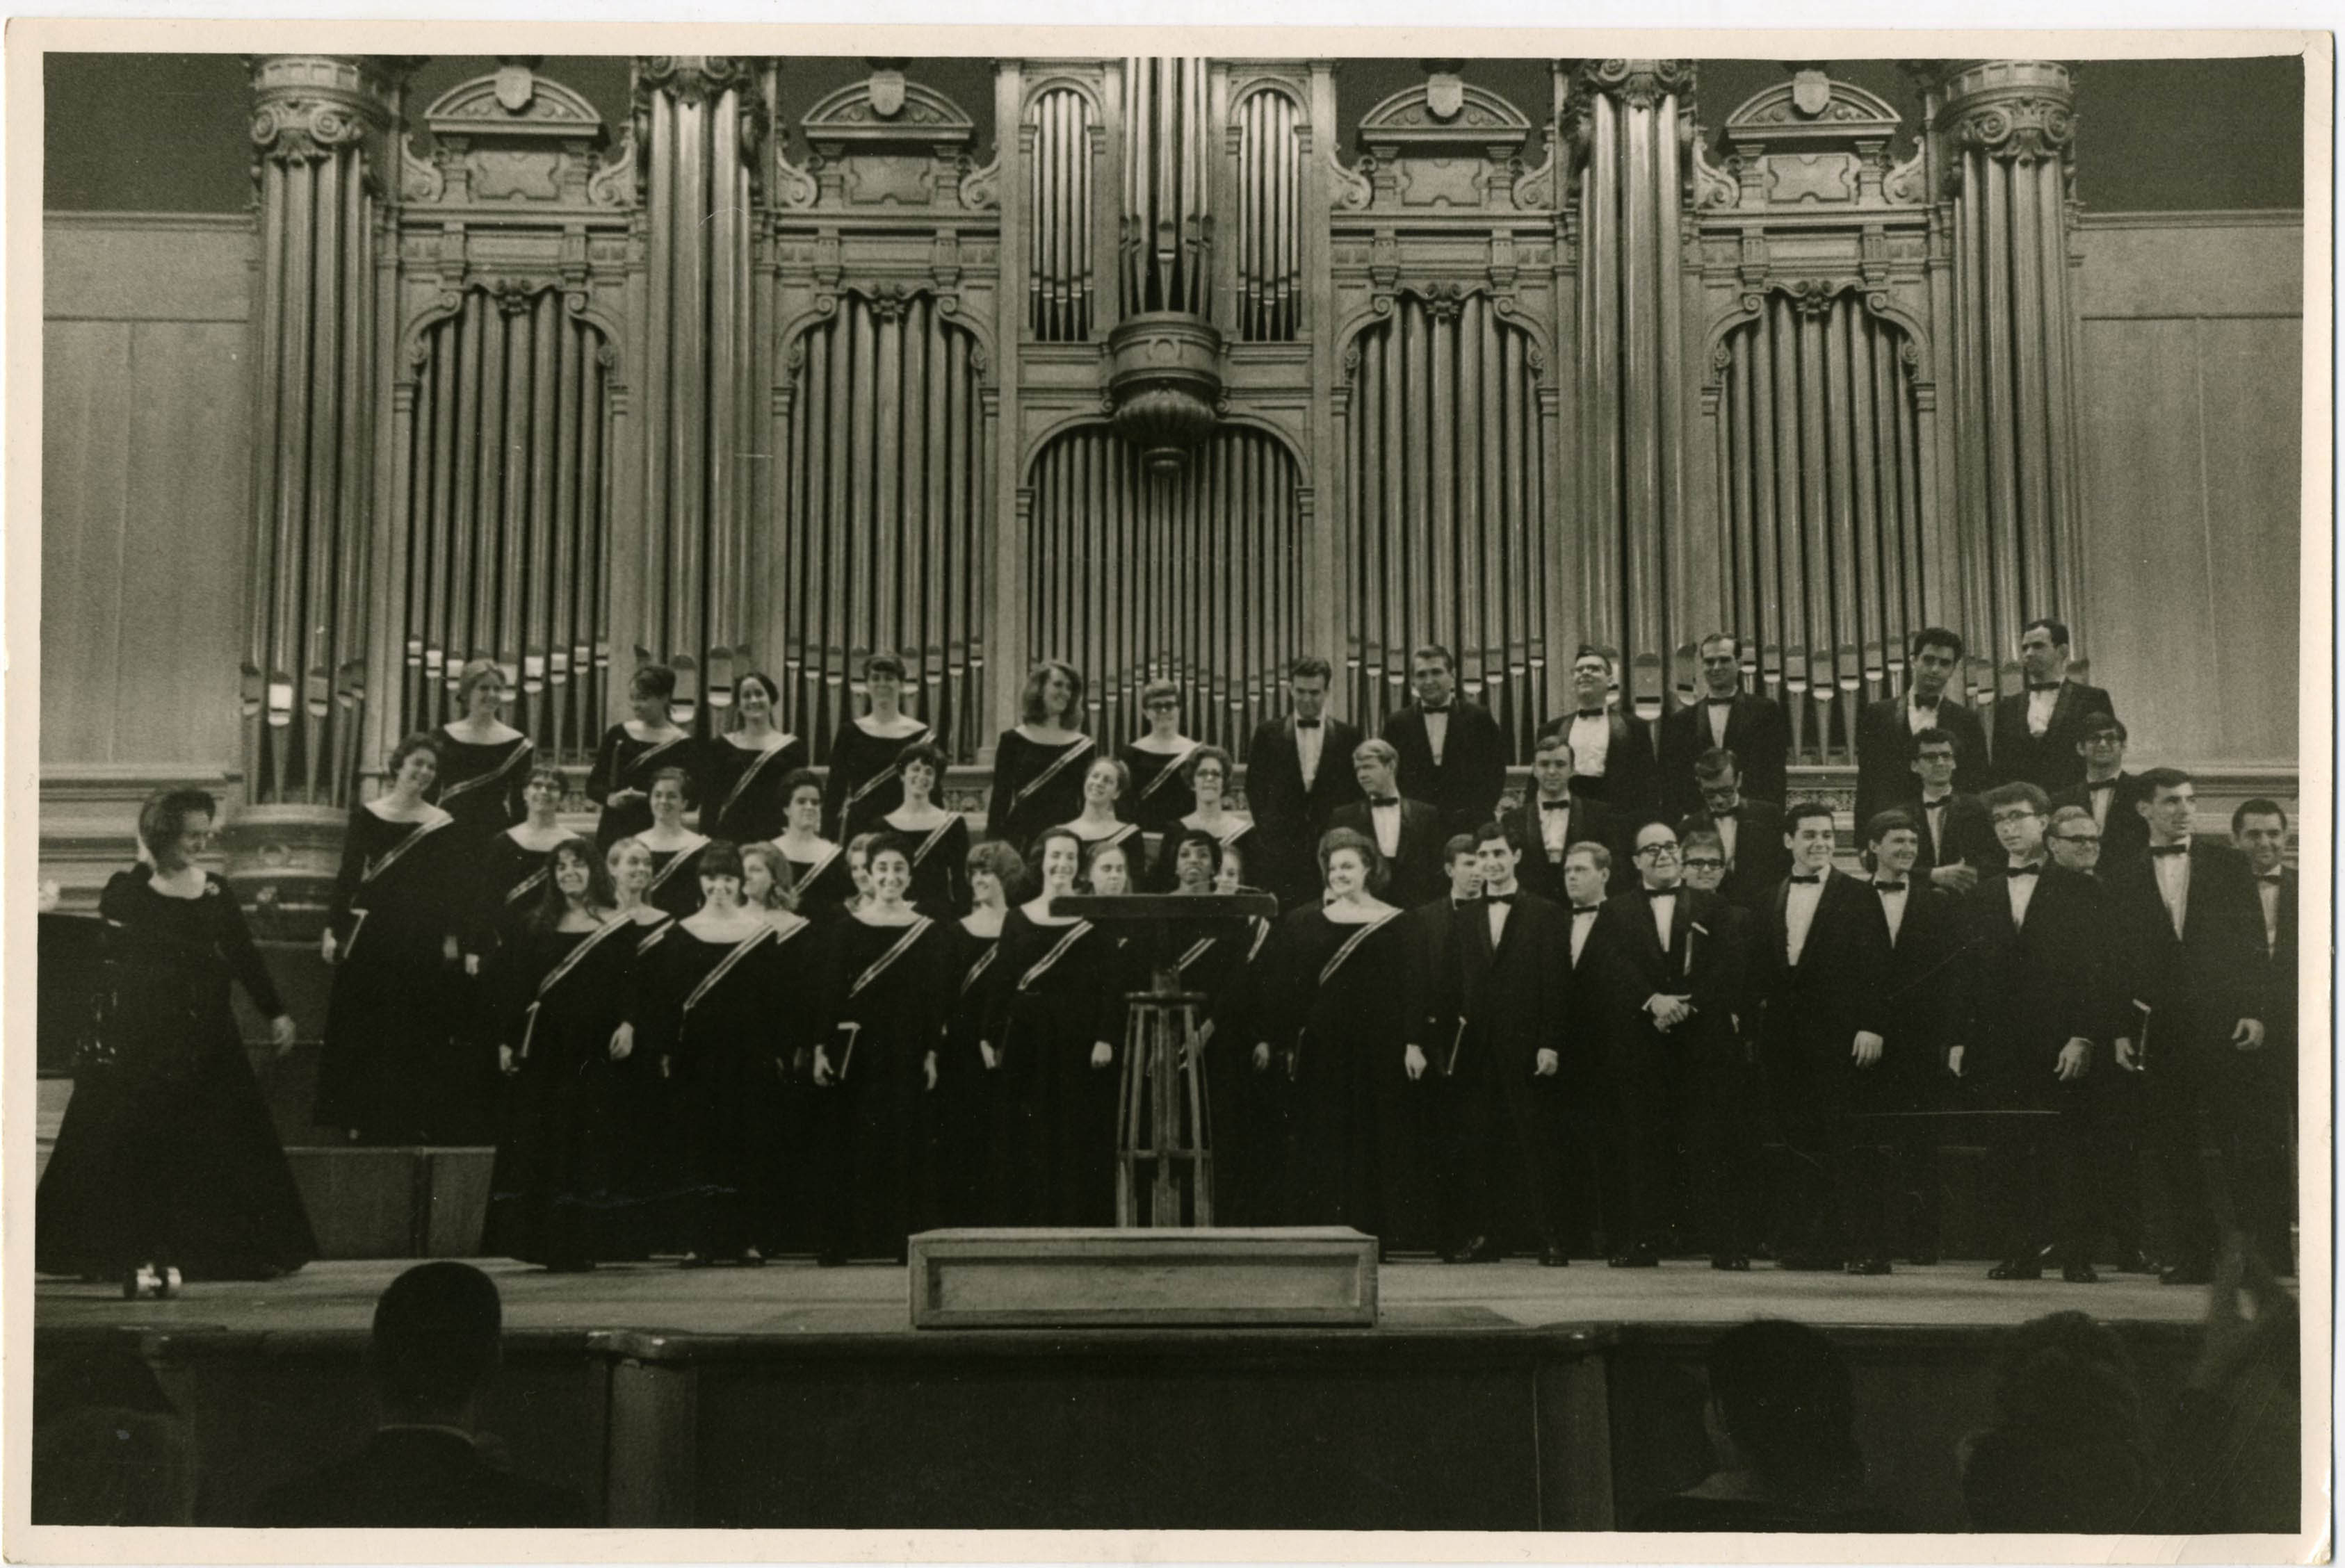 Lorna Cooke deVaron poses with the NEC Chorus in a concert hall in Moscow in 1966.